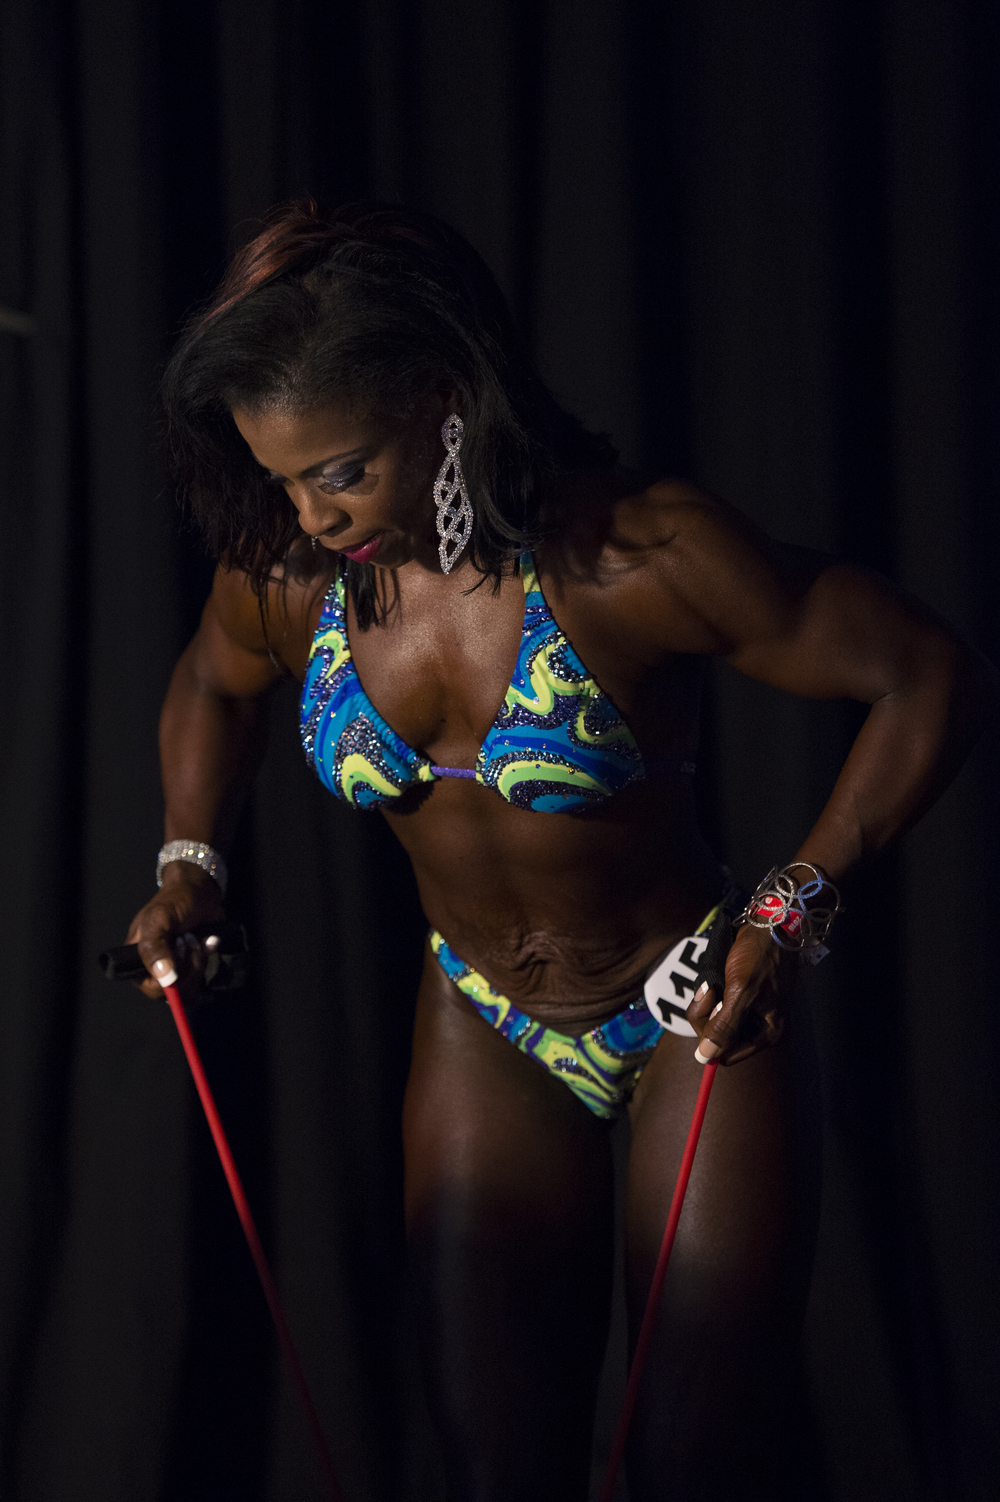 Michelle Bailey from Trinidad and Tobago warms up before heading on-stage for the Women's Bodyfitness Figure B pre-judging competition at Battelle Hall during the Arnold Sports Festival on Thursday, March 3, 2016.